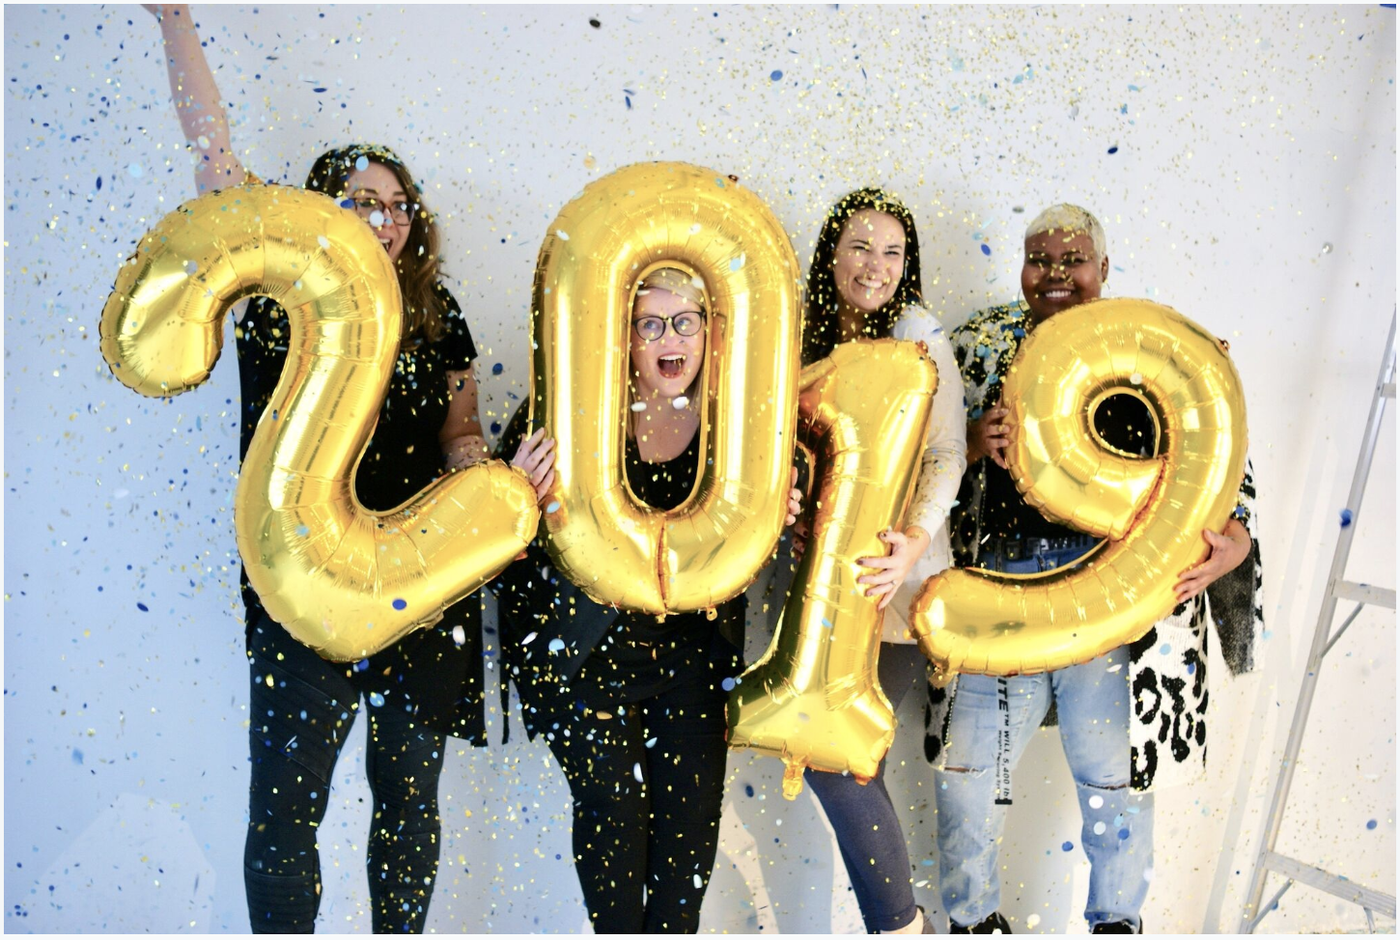 Gold 2019 number balloons being held by 4 people with confetti falling